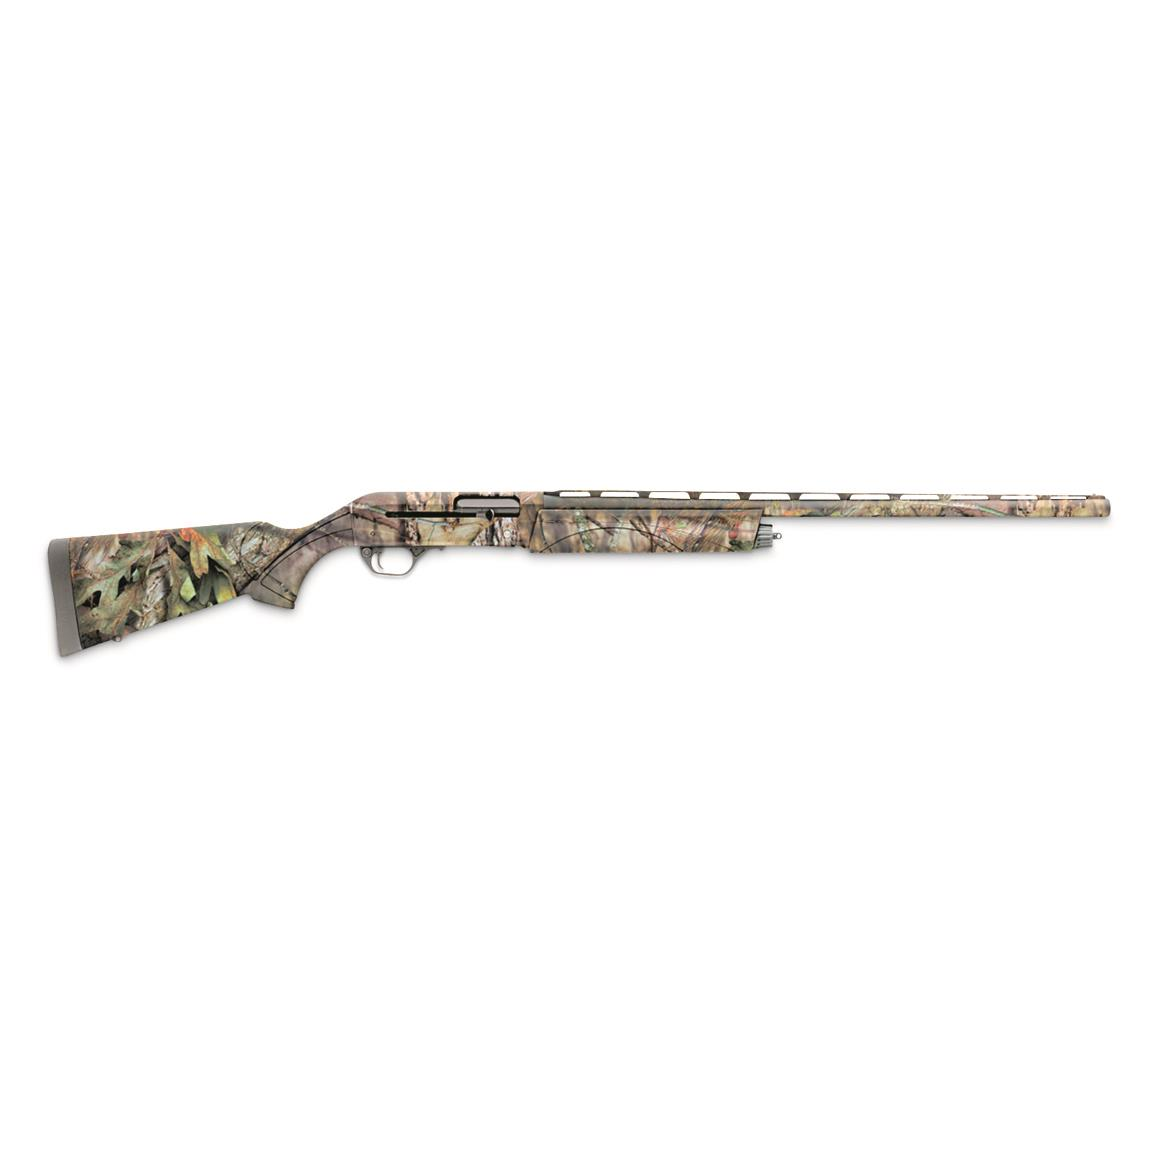 "Remington V3 Field Sport Synthetic Camo, Semi-Automatic, 12 Gauge, 26"" Barrel, 3+1 Rounds"